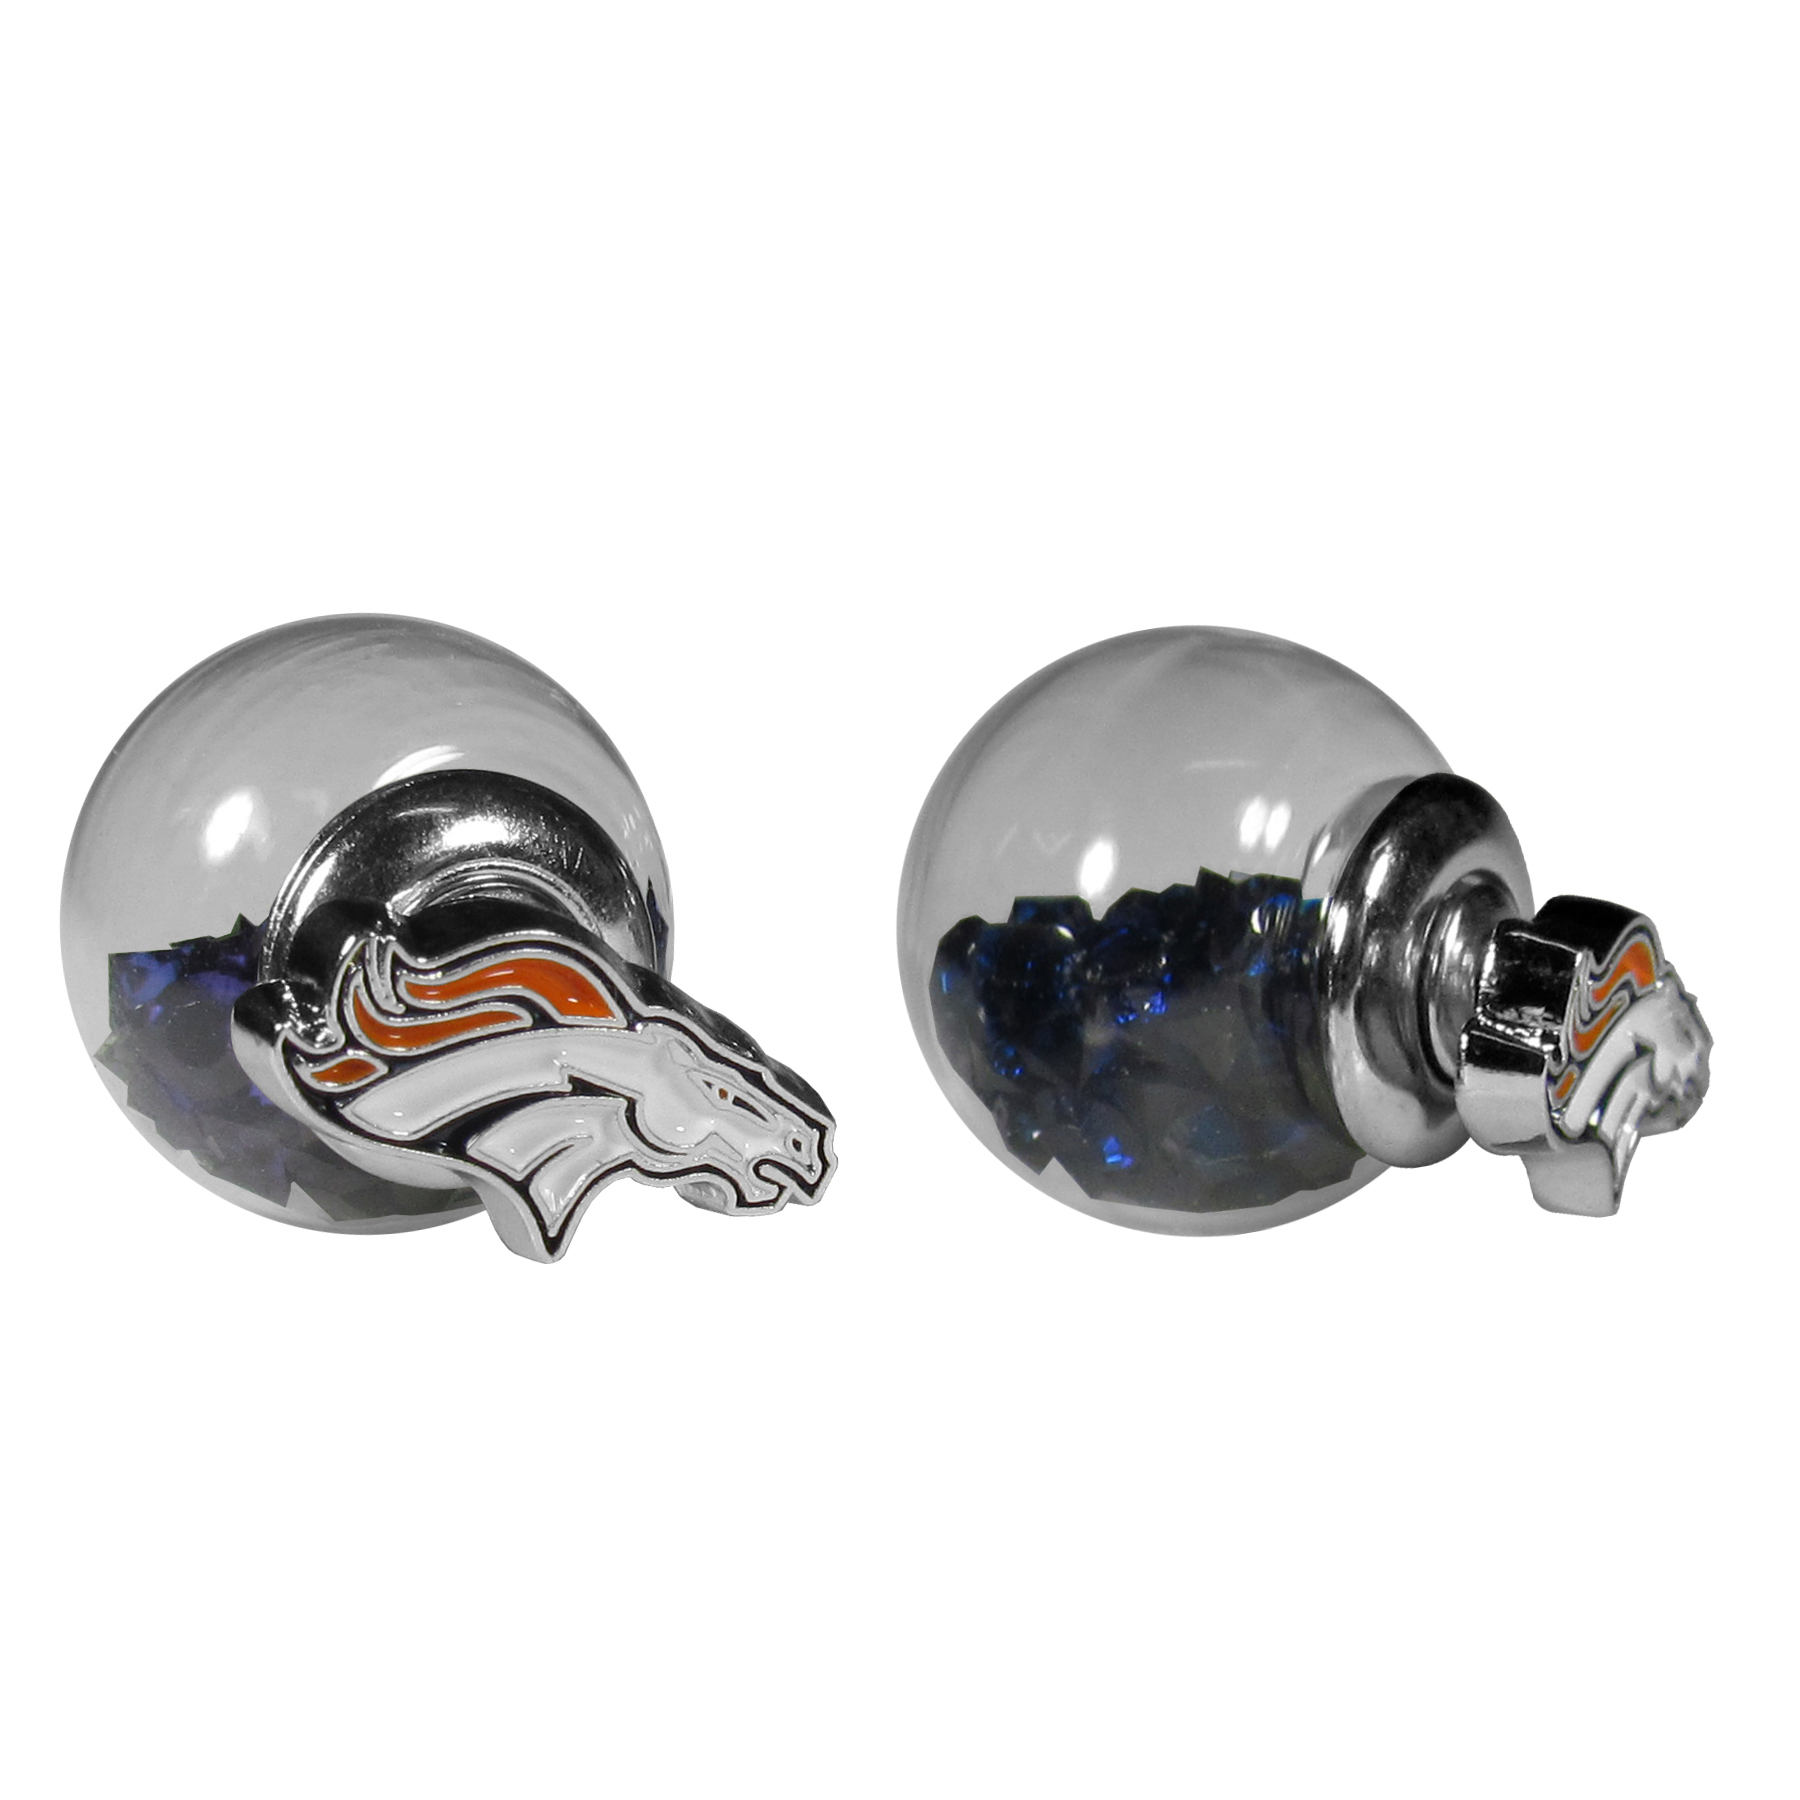 Denver Broncos Front/Back Earrings - Get in on one of the most popular trends in jewelry, front and back earrings! This must-have style is all of over the red carpets and we taken this contemporary look and paired it with your love of the Denver Broncos! The front of the earring is a sporty team logo and the back of these eye-catching earrings is a glass ball filled with colored crystal beads. This piece is perfect for a fashion-forward fan, with bold taste and trend-setting style.